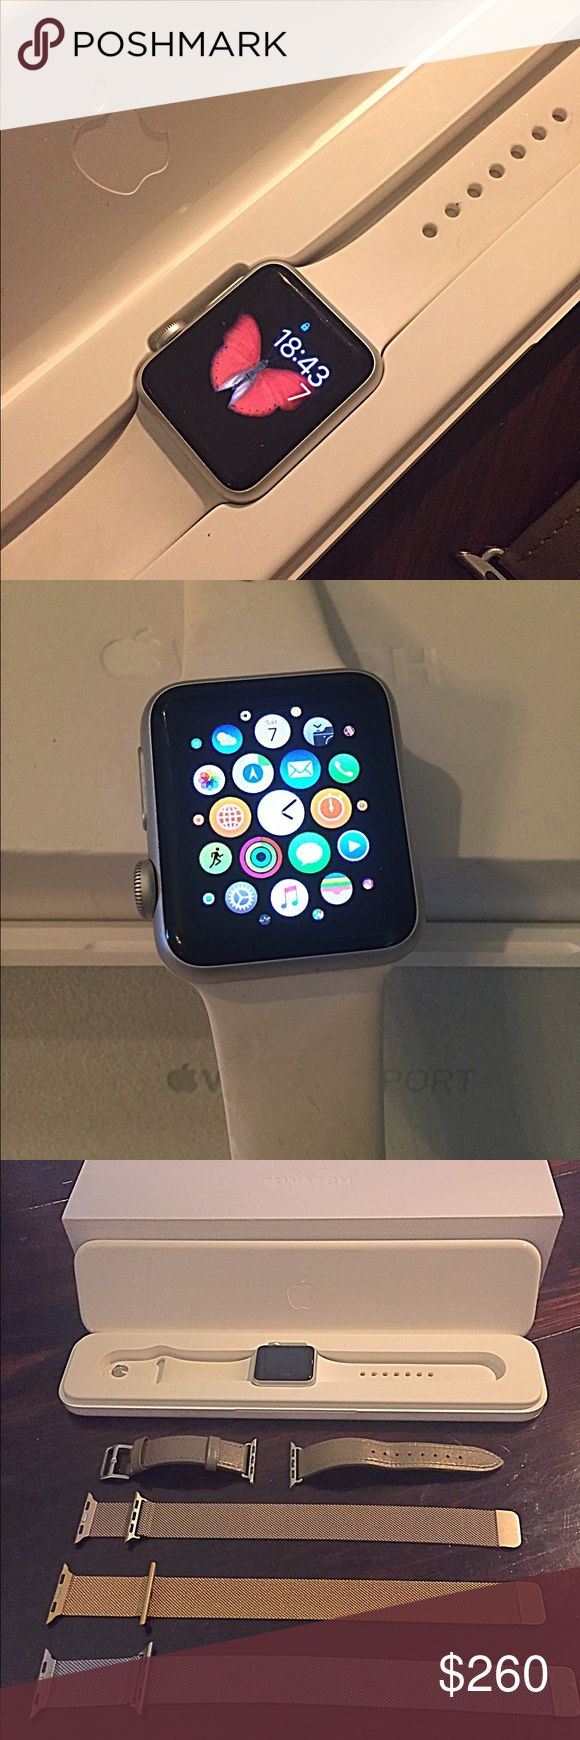 Apple 7000 series 38mm Smart Watch iWatch 7000 series silver aluminum case with white sports band. Gorgeous anodized aluminum case, Ion-X Glass, Retina display with force touch. Composite back, splash and water resistant (not waterproof). Heart rate sensor, accelerometer and gyroscope. Ambient light sensor. Comes with over $150 worth of interchangeable watch bands to include a taupe leather band, a silver mesh, gold mesh, and light gold mesh with magnetic closures. Price is firm on this…